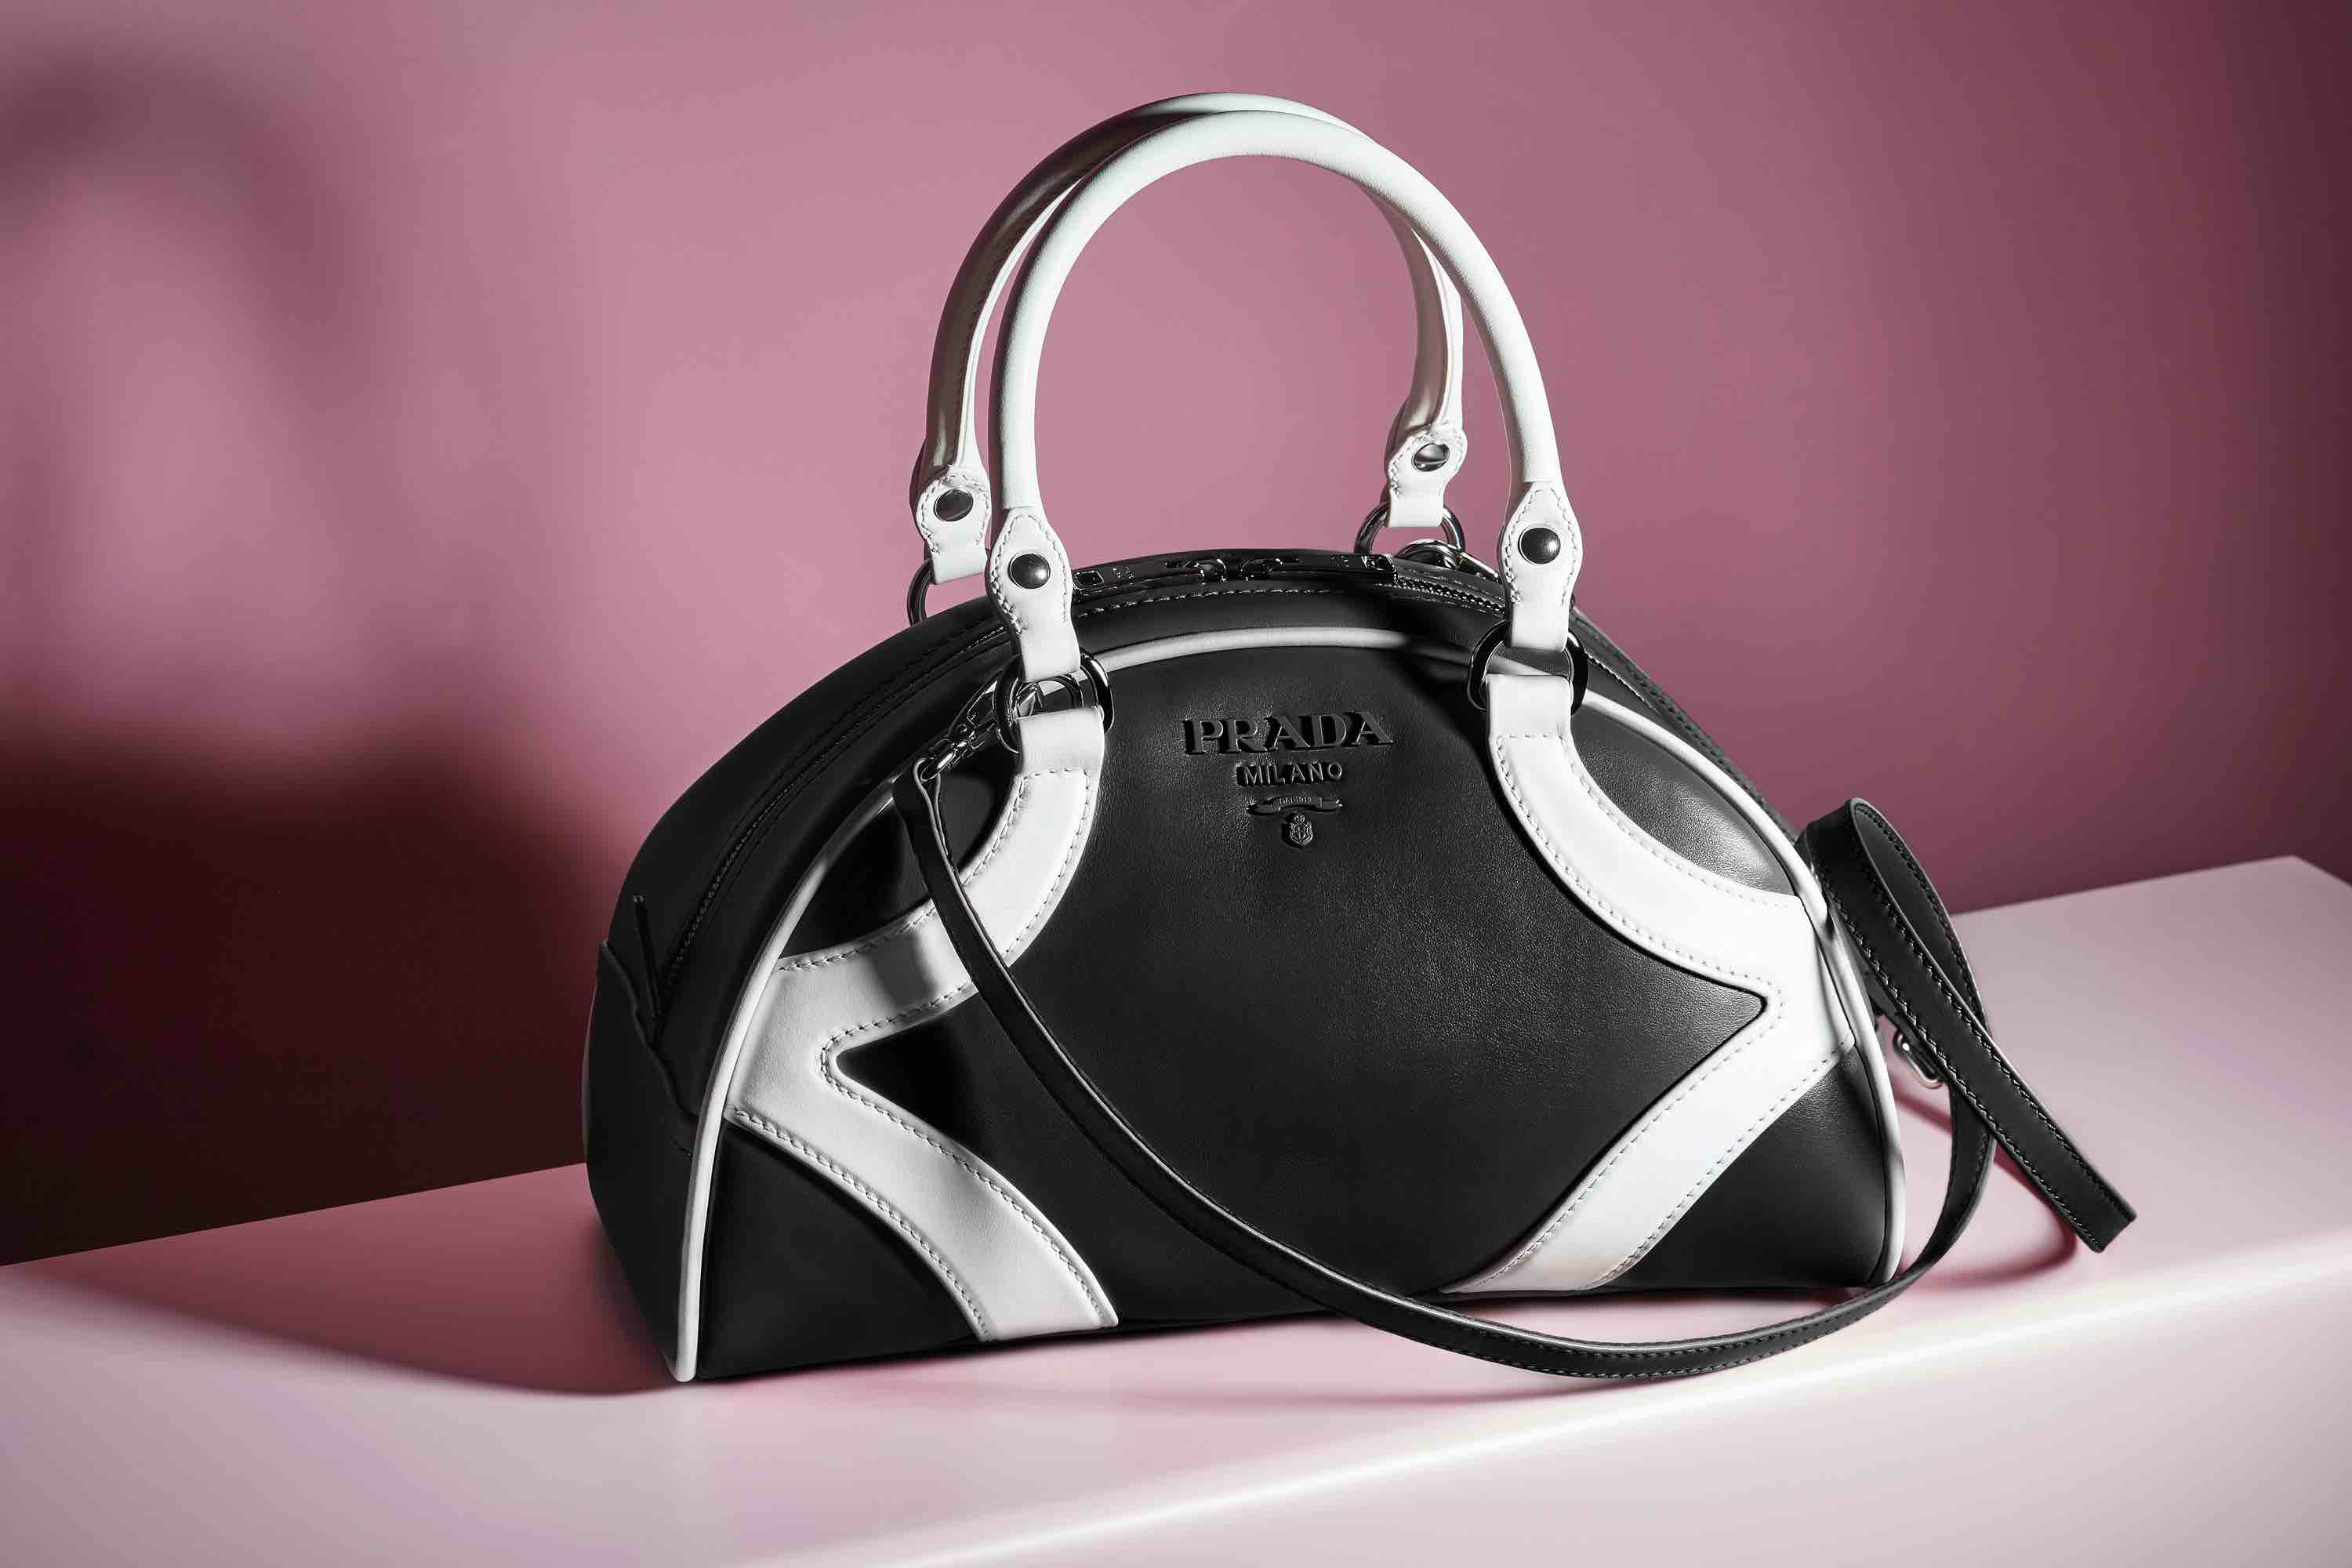 Prada bowling bag resort 2020 collection black and white